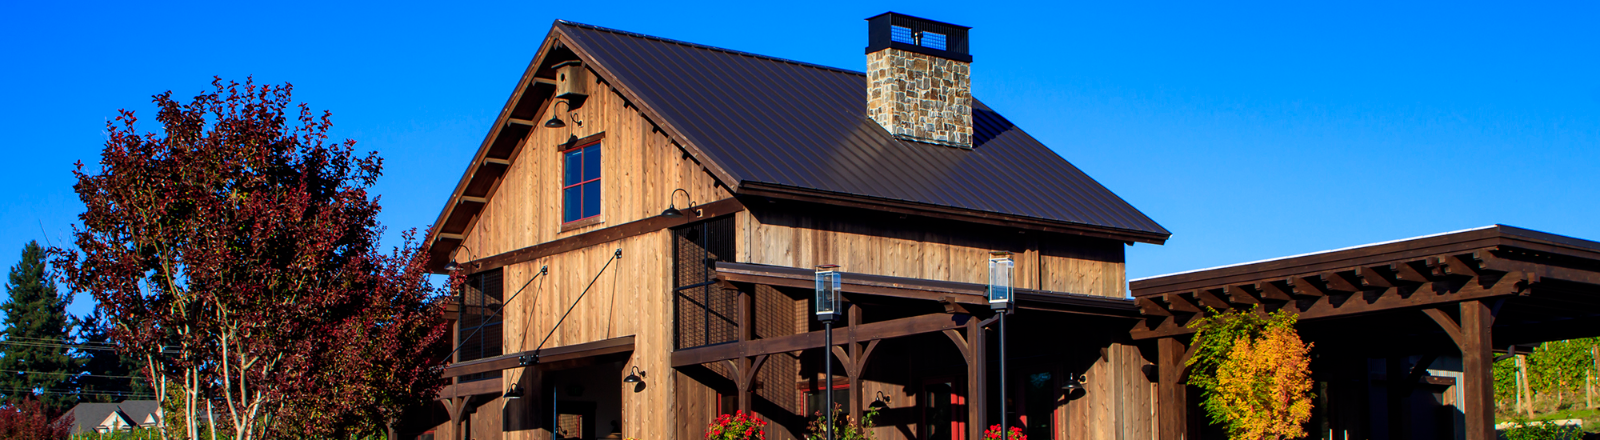 Tumwater Vineyard's rustic barrel house tasting room exterior with covered patio and rock rimmed pond high on Pete's Mountain in West Linn